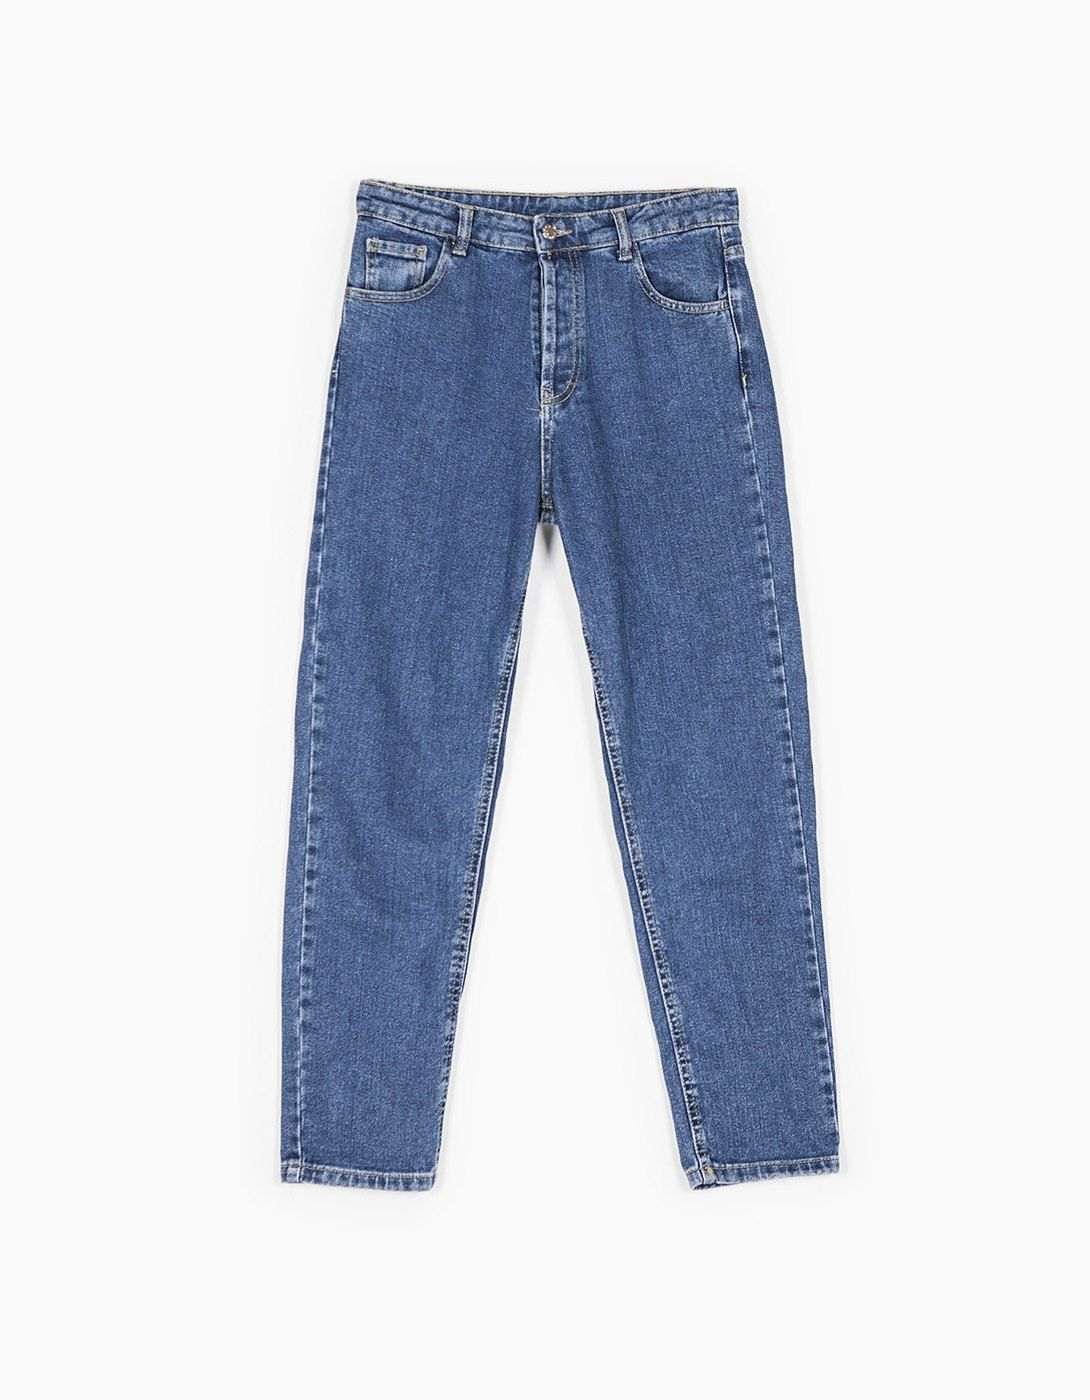 19645c2dff At Stradivarius you ll find 1 Vintage mom fit jeans for just 25.99 United  Kingdom . Visit now to discover this and more Just in.